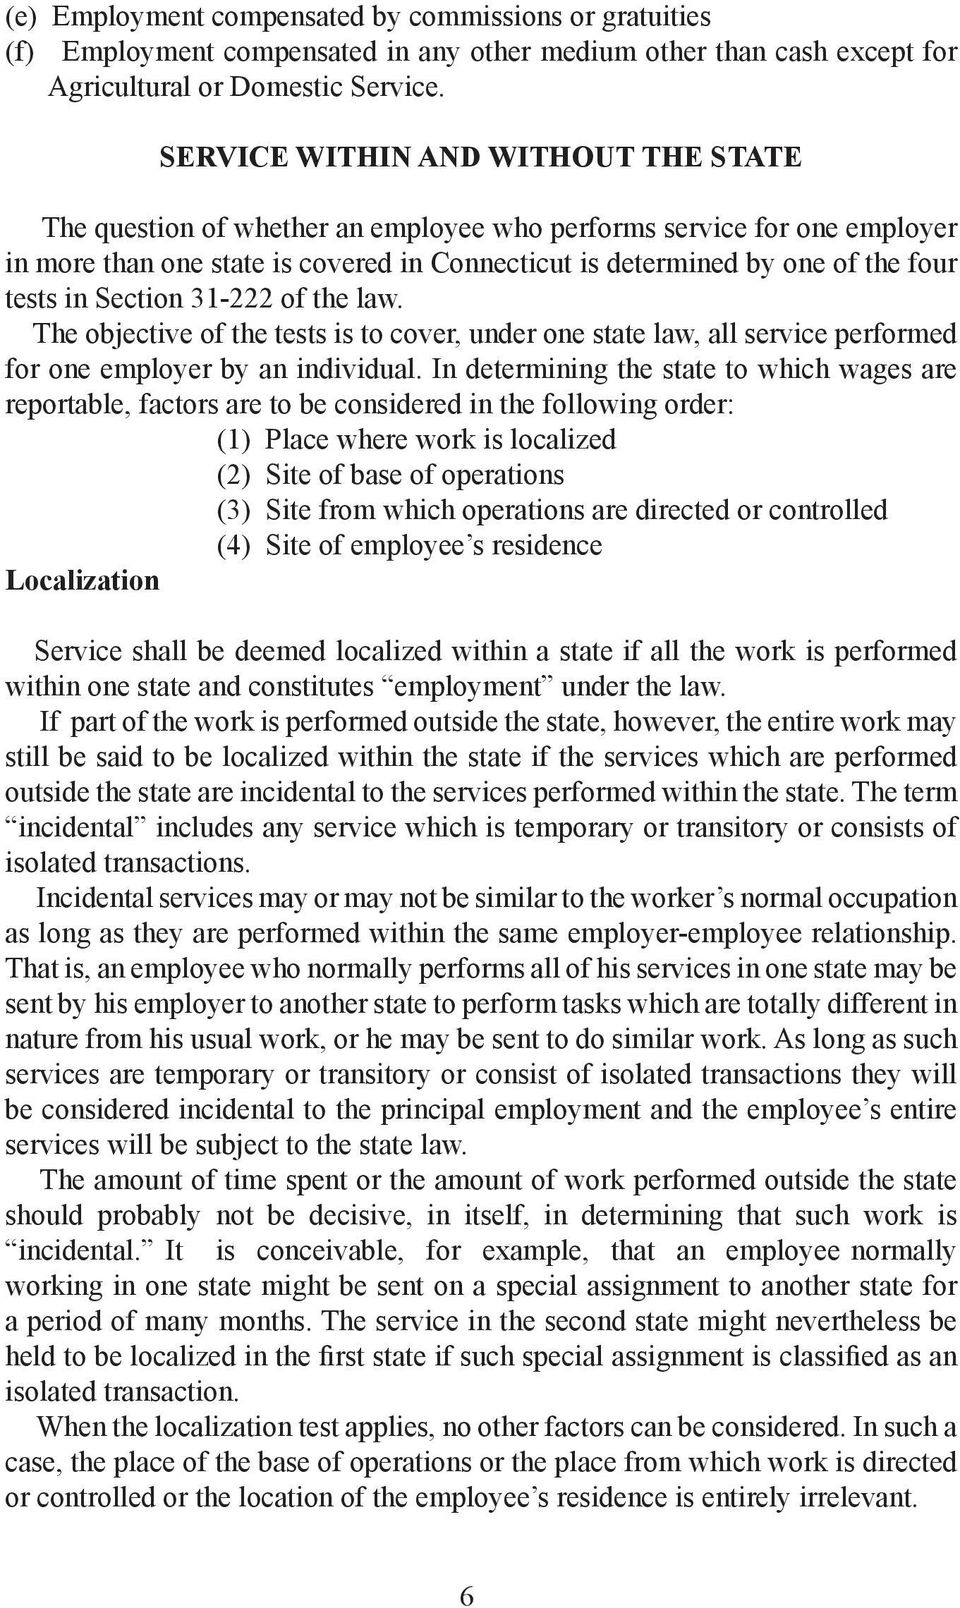 in Section 31-222 of the law. The objective of the tests is to cover, under one state law, all service performed for one employer by an individual.